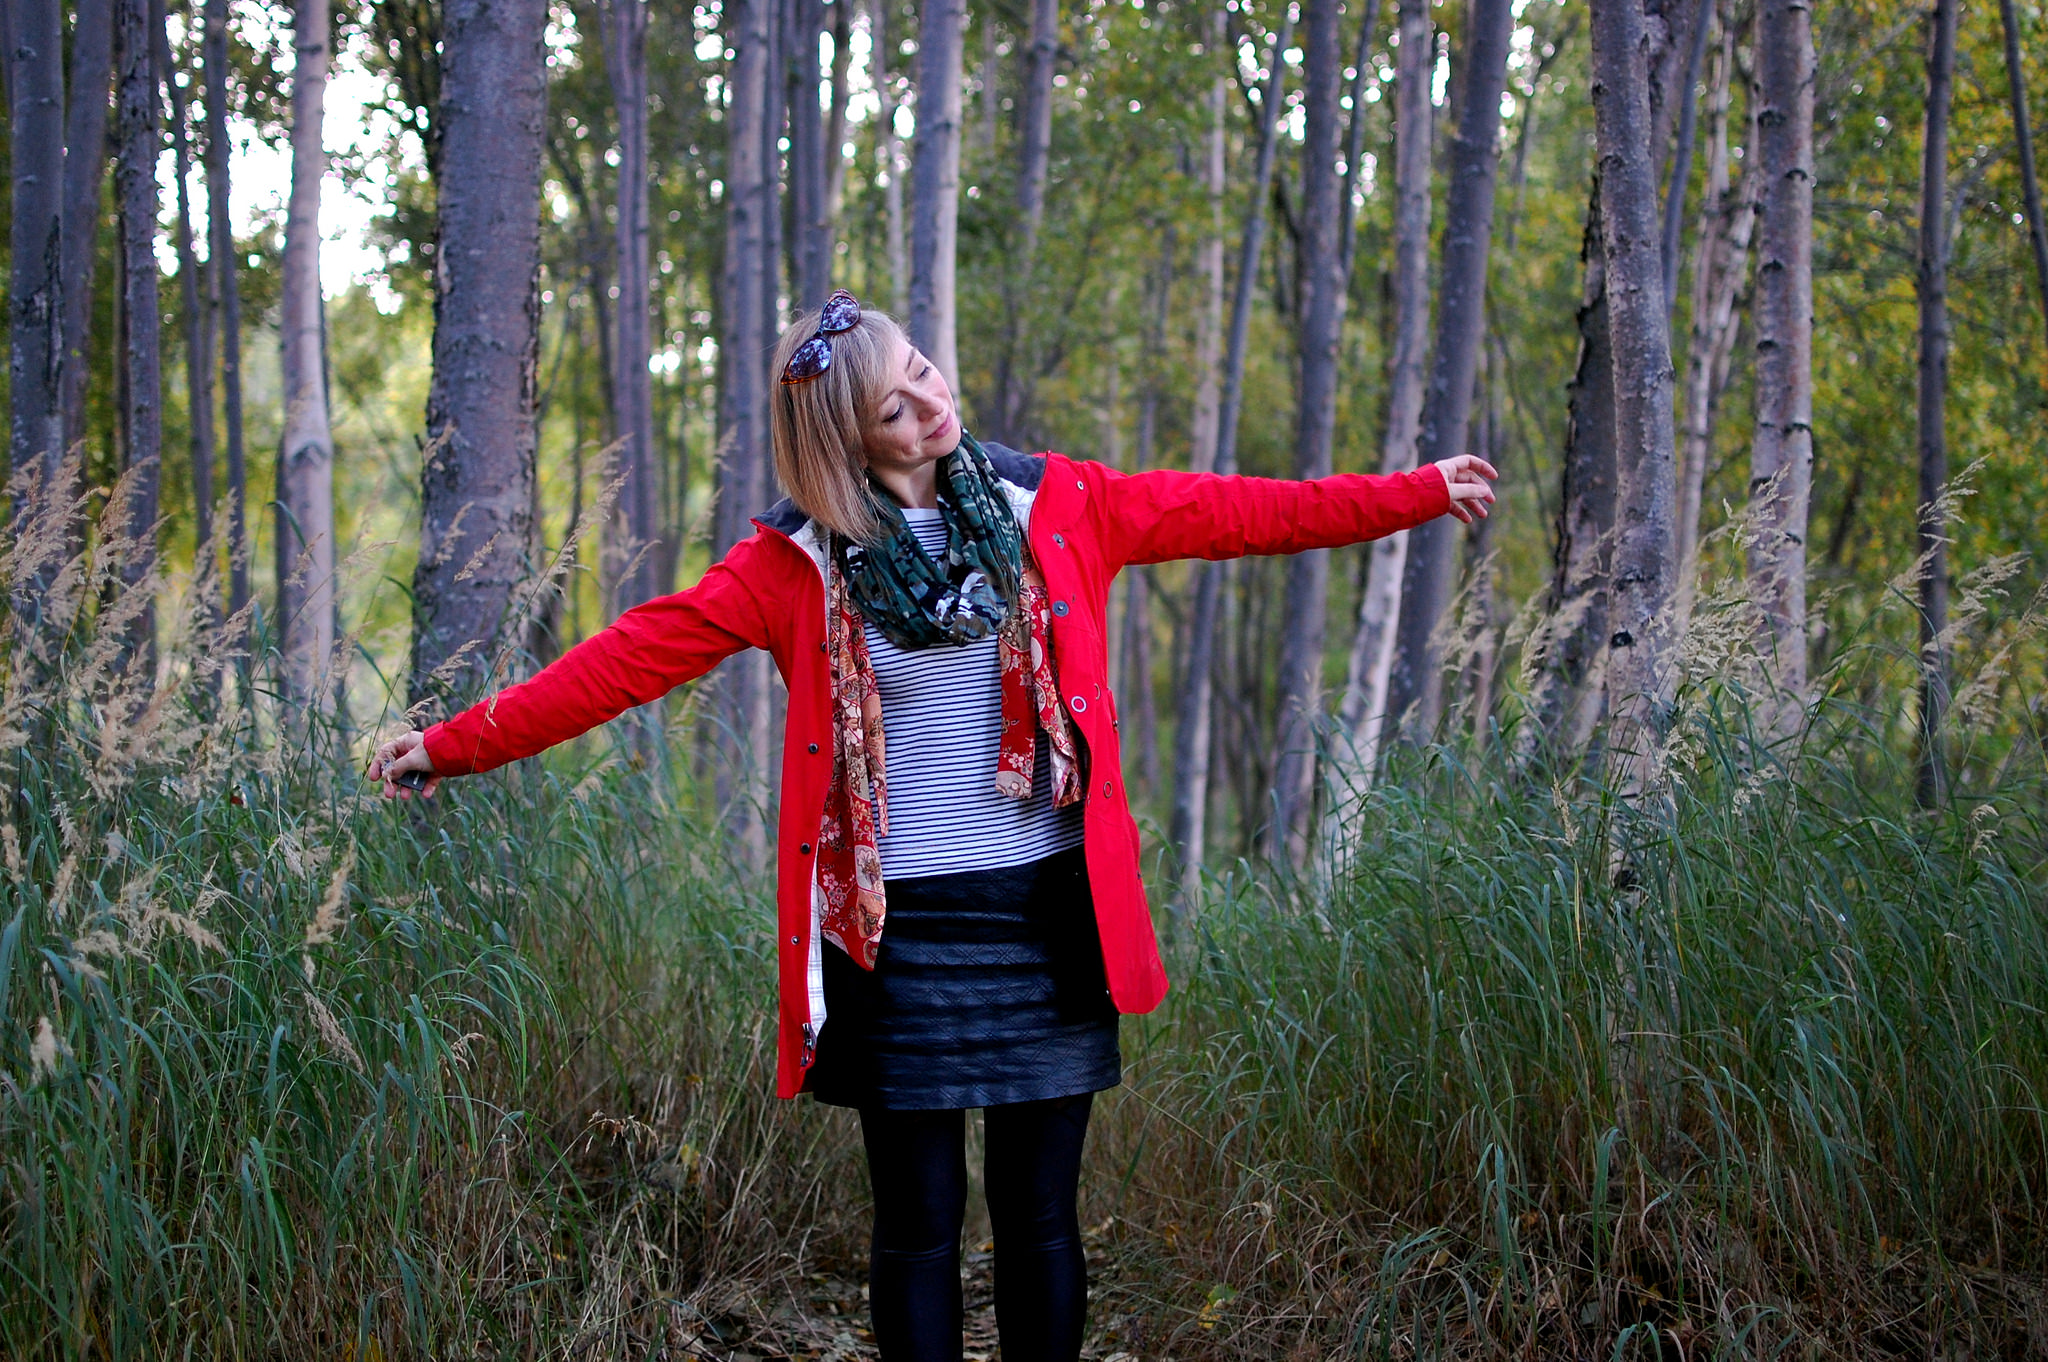 raincoat alaska fall daily outfit blog ootd whatiwore2day